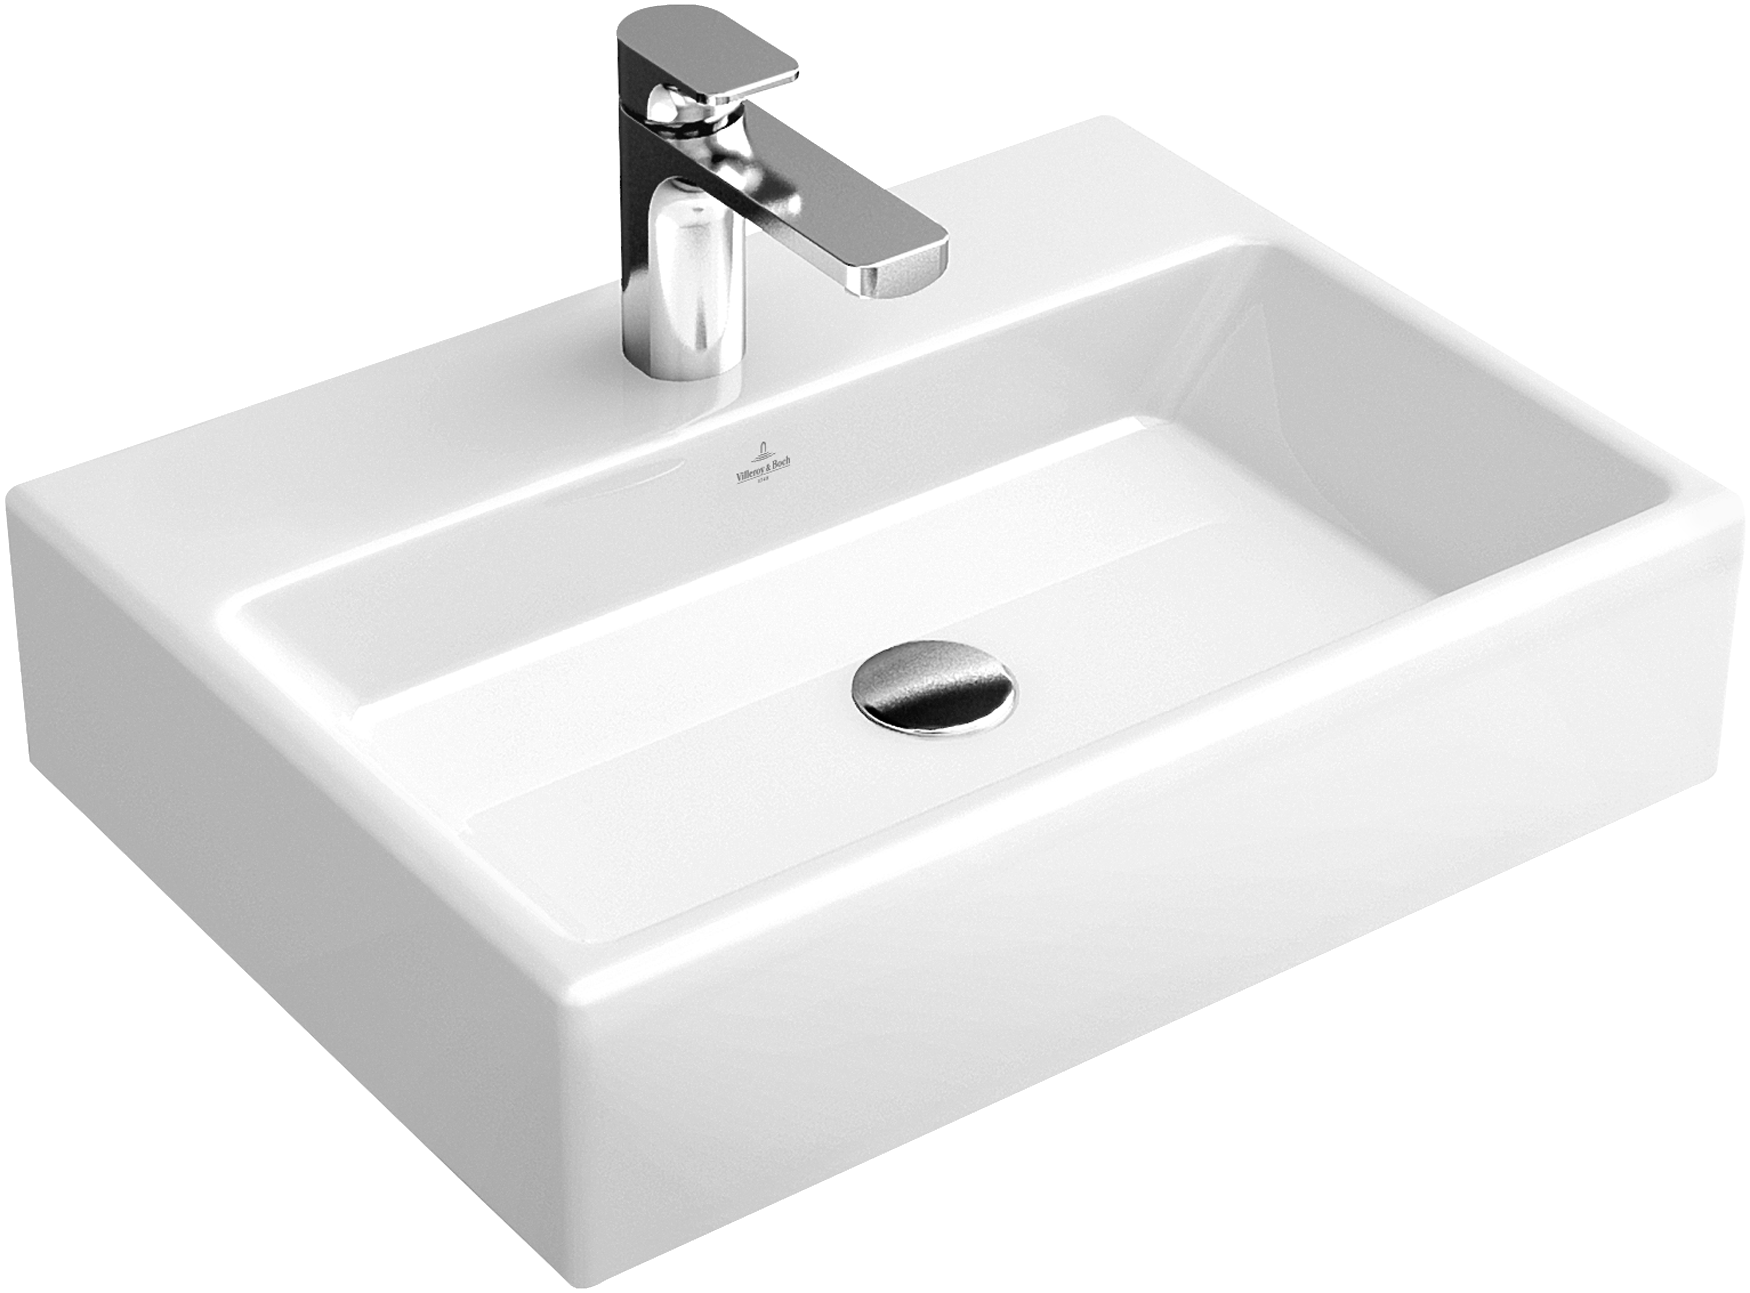 Waschtisch Duravit Vero 50 X 47 Memento Washbasin 600 X 420 Suitable For Three Tap Holes